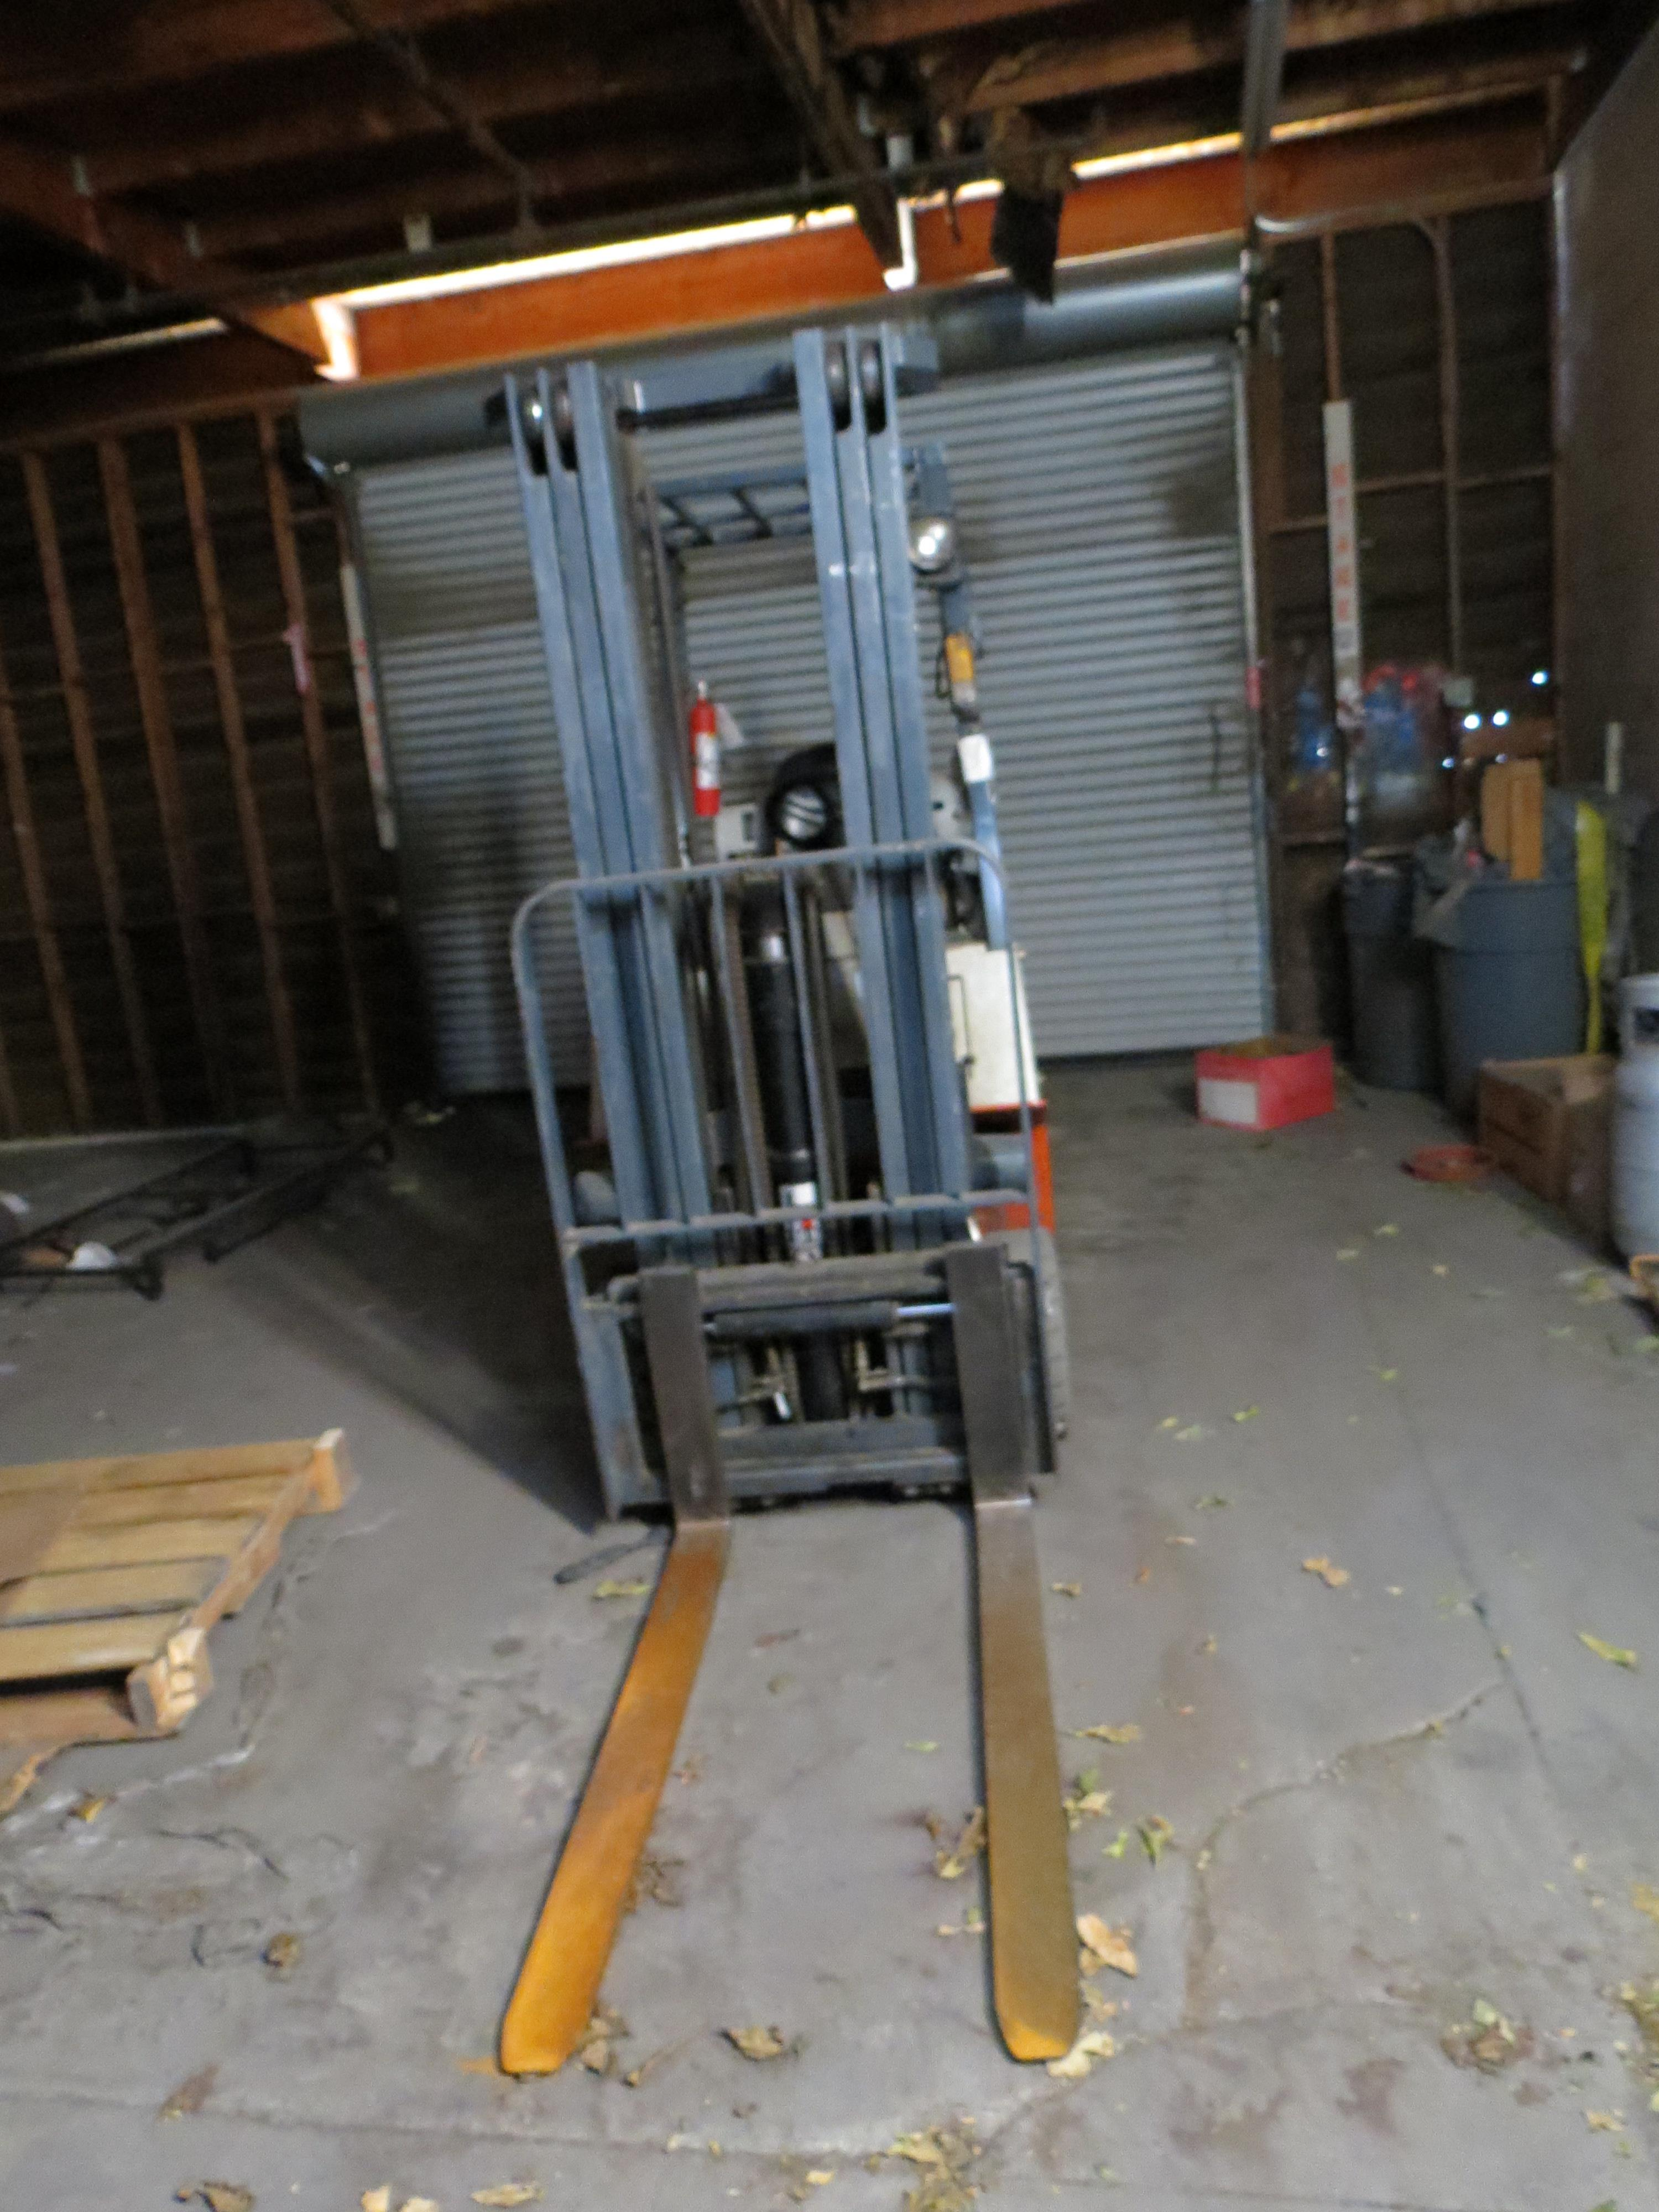 Nissan Model CPJ01A15PV 3-Stage 2500K Capacity LPG Forklift with Side Shift - Image 5 of 6